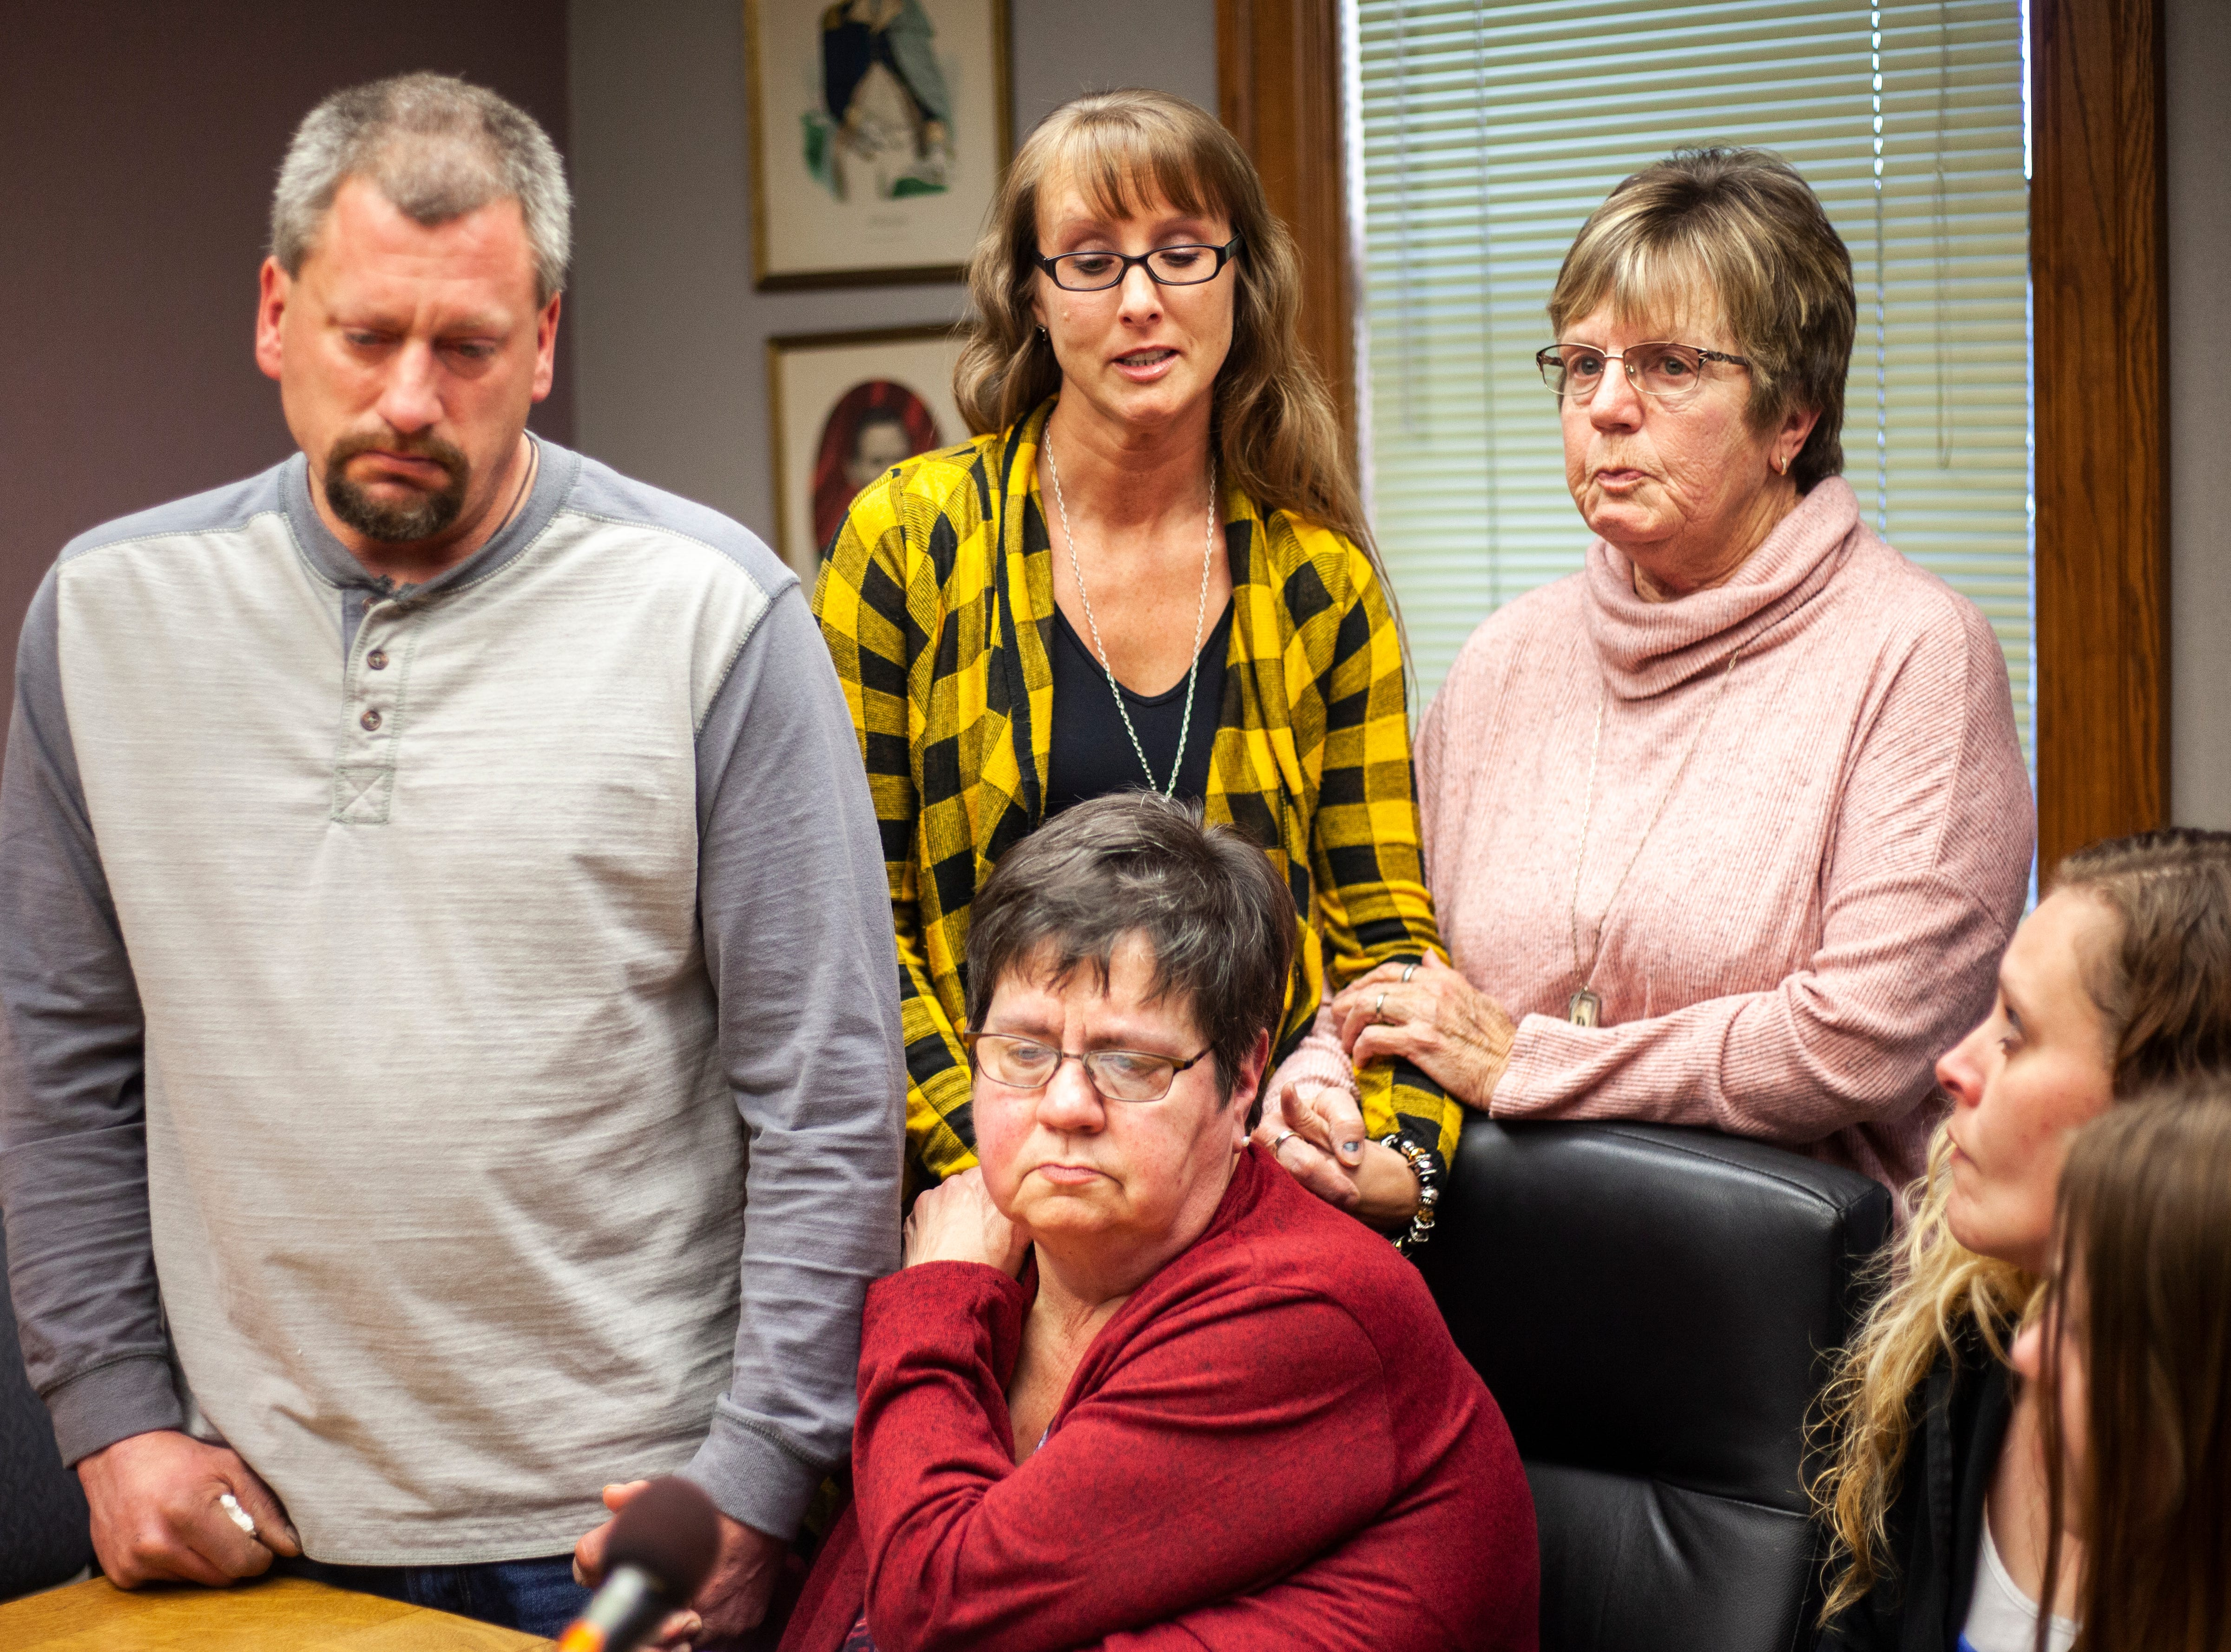 Lucy Miller (yellow) is comforted by family members including Ricky Lillie's mother, Peggy Armstrong (red) while giving a statement after a sentencing hearing for Curtis Cortez Jones on Friday, Jan. 4, 2019, at the Johnson County Courthouse, in Iowa City, Iowa.